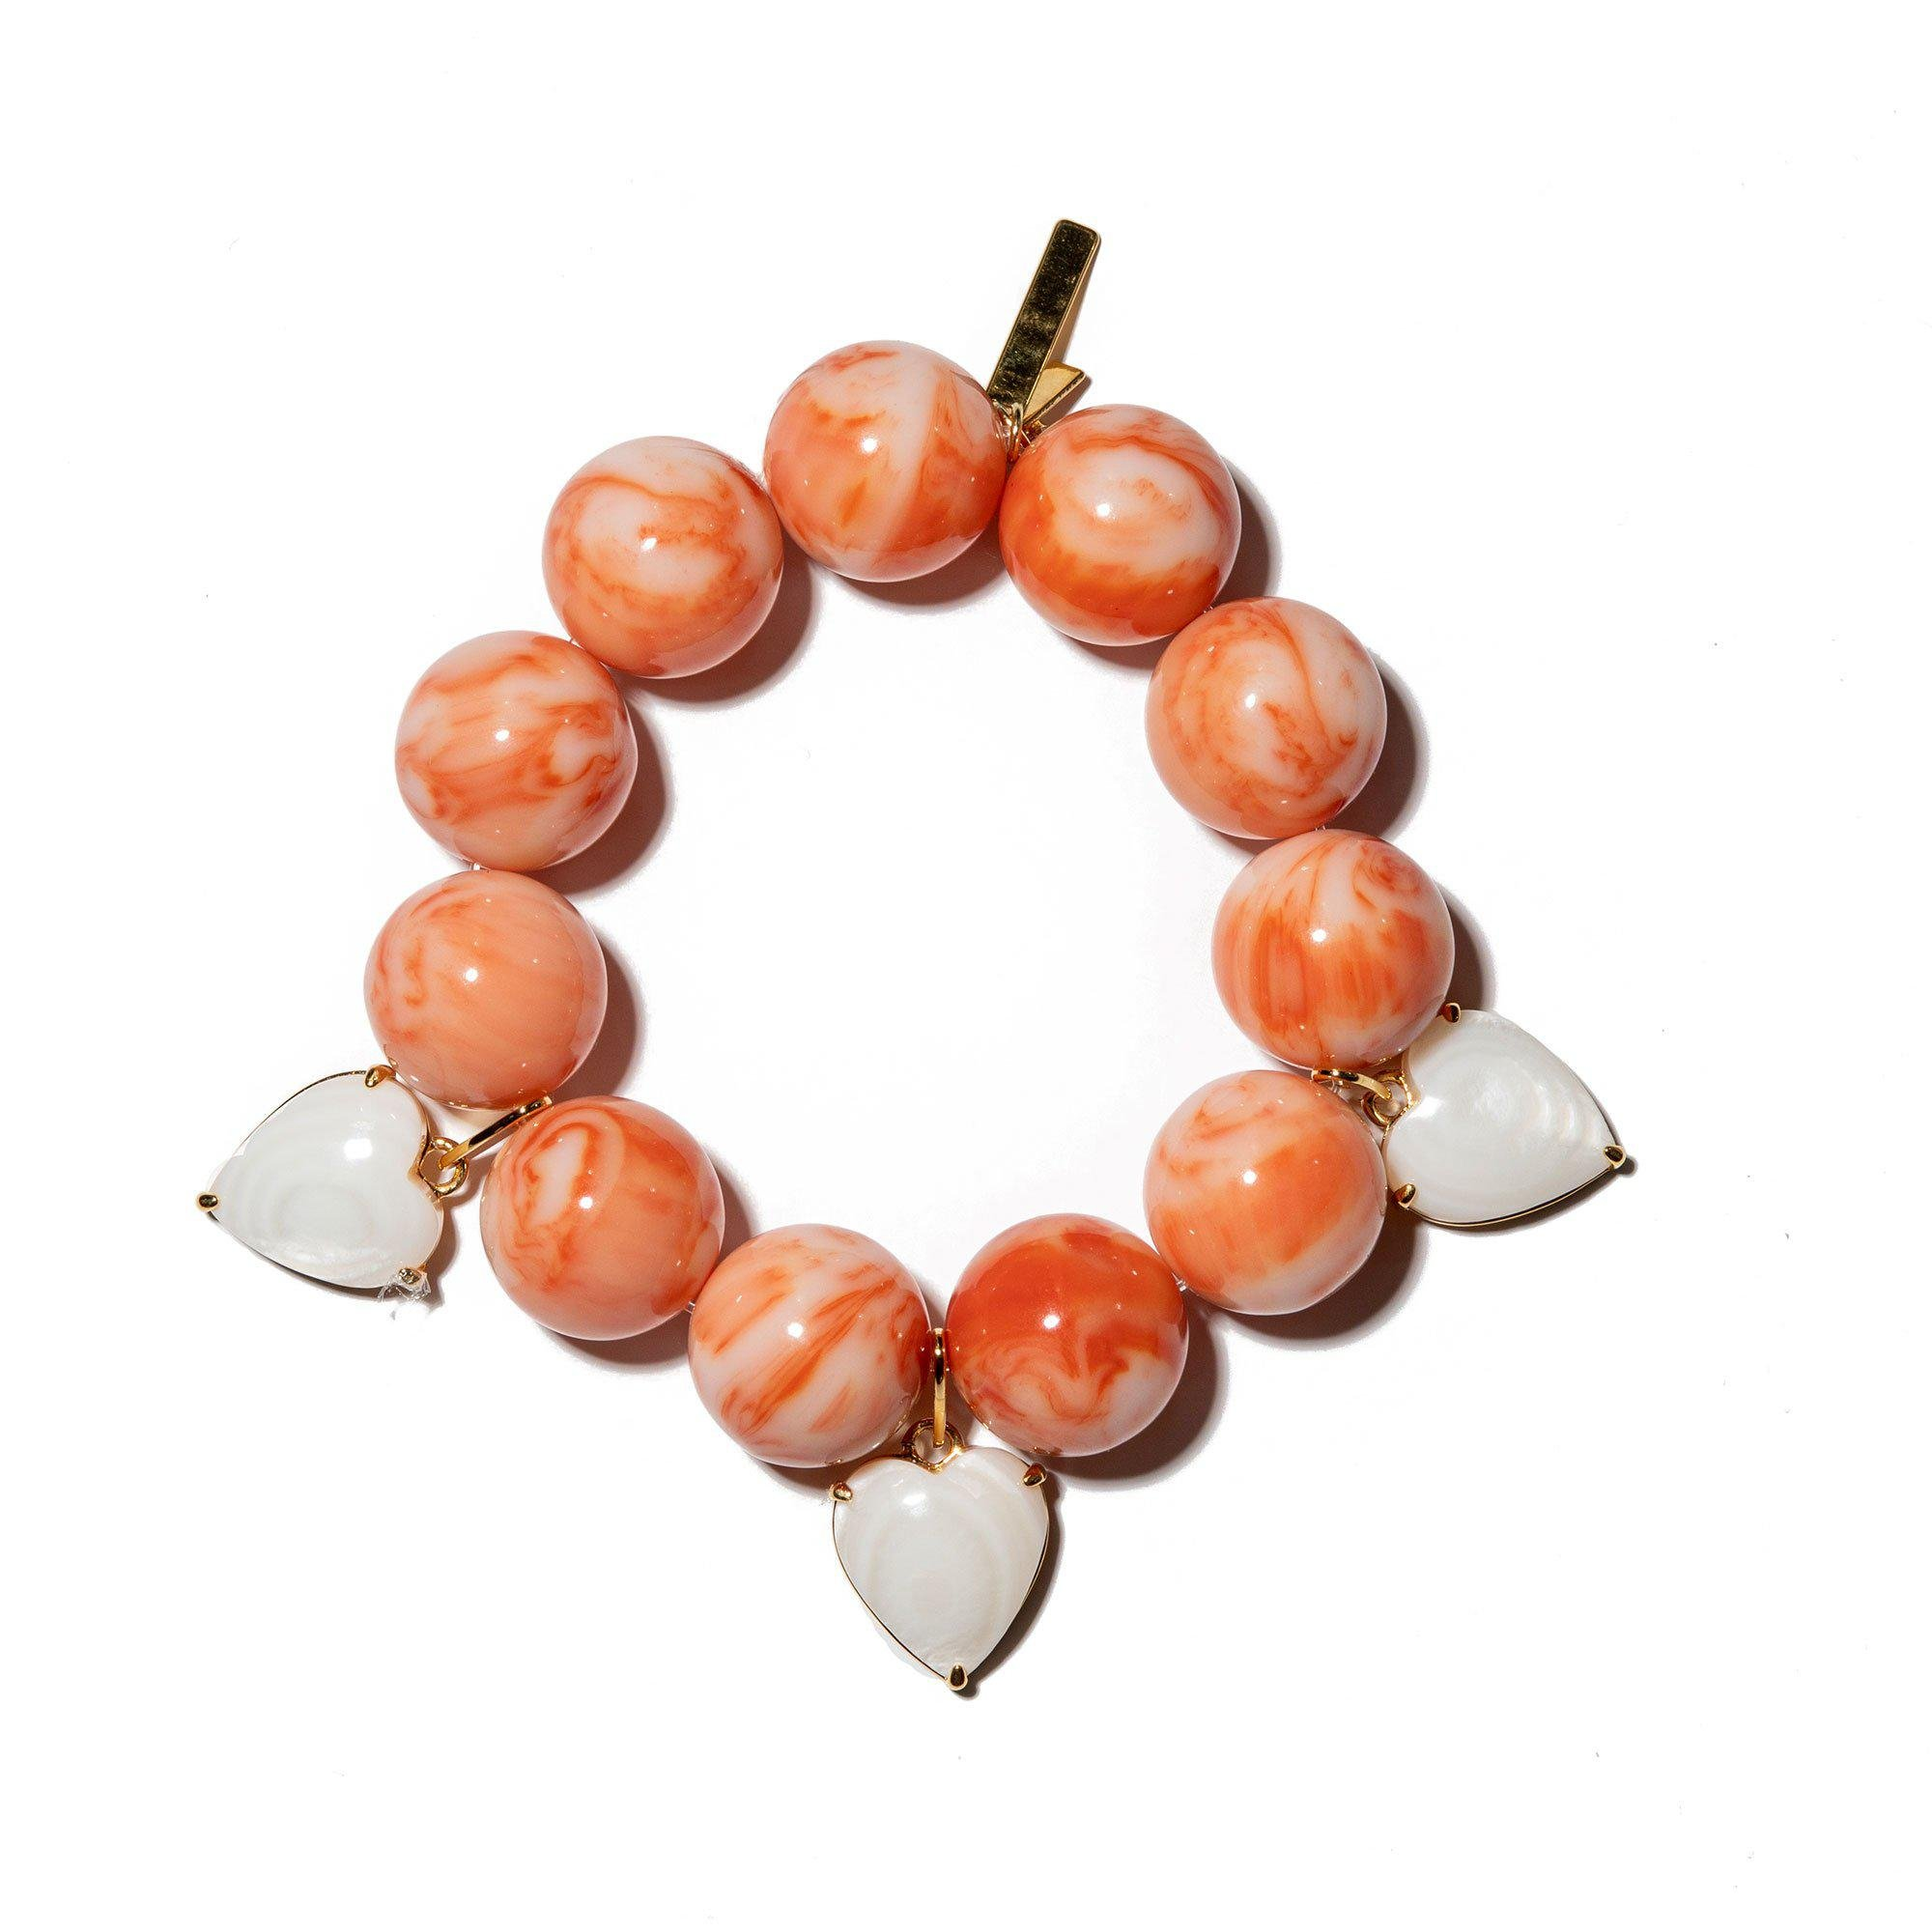 CORAL HEART CHARM COUNTRY CLUB BRACELET